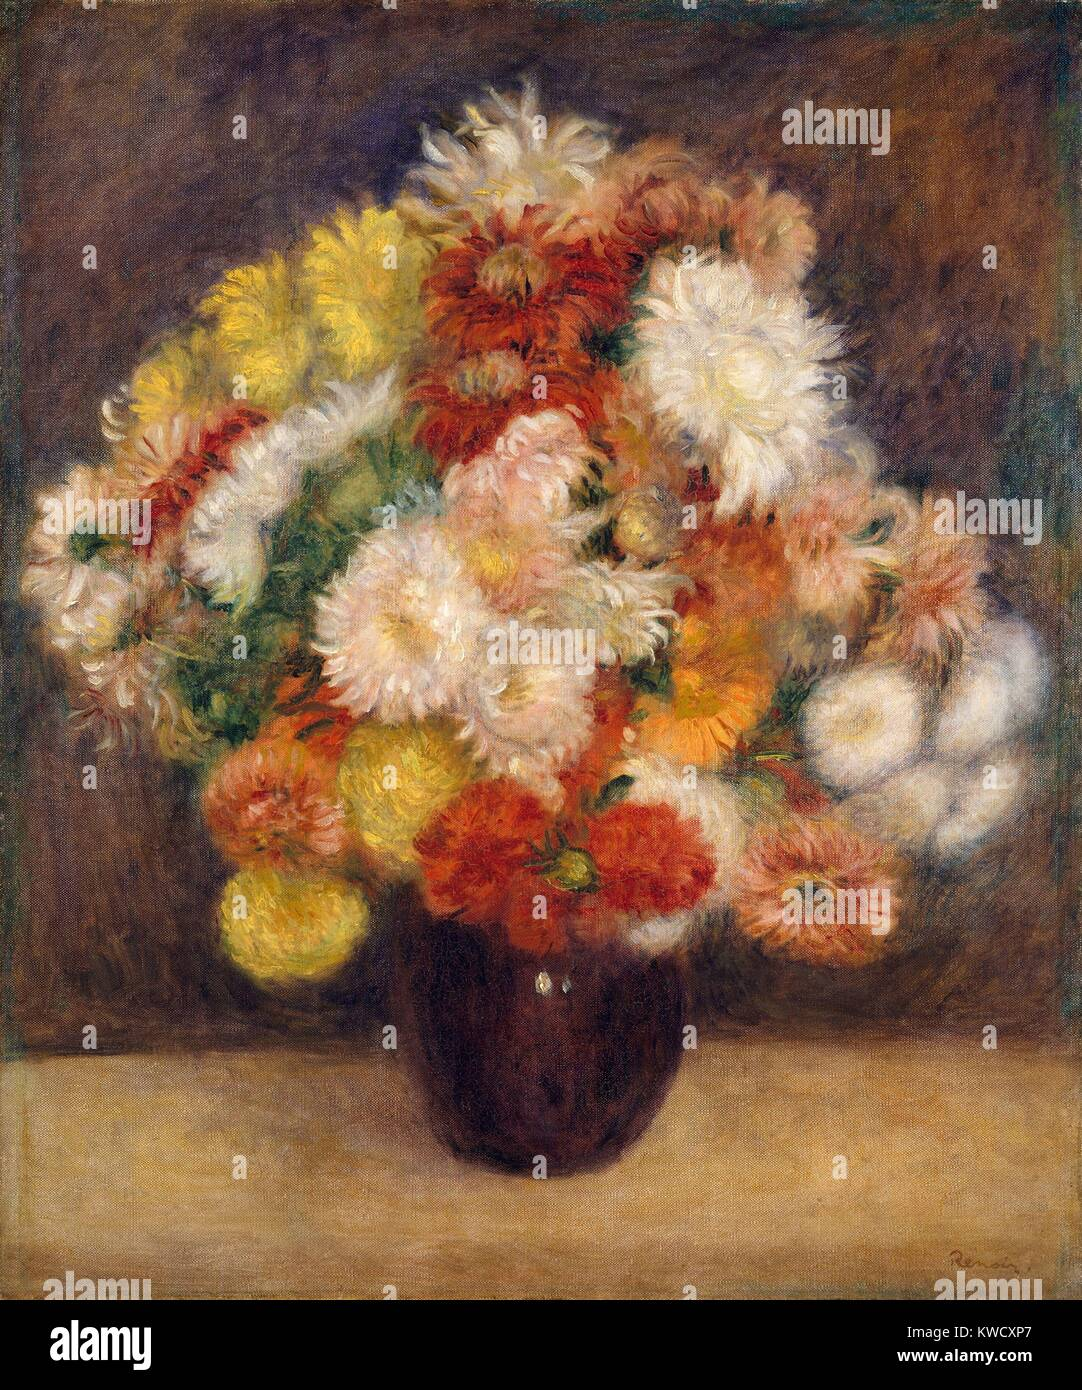 Bouquet of Chrysanthemums, by Auguste Renoir, 1881, French impressionist painting, oil on canvas (BSLOC_2017_3_85) - Stock Image